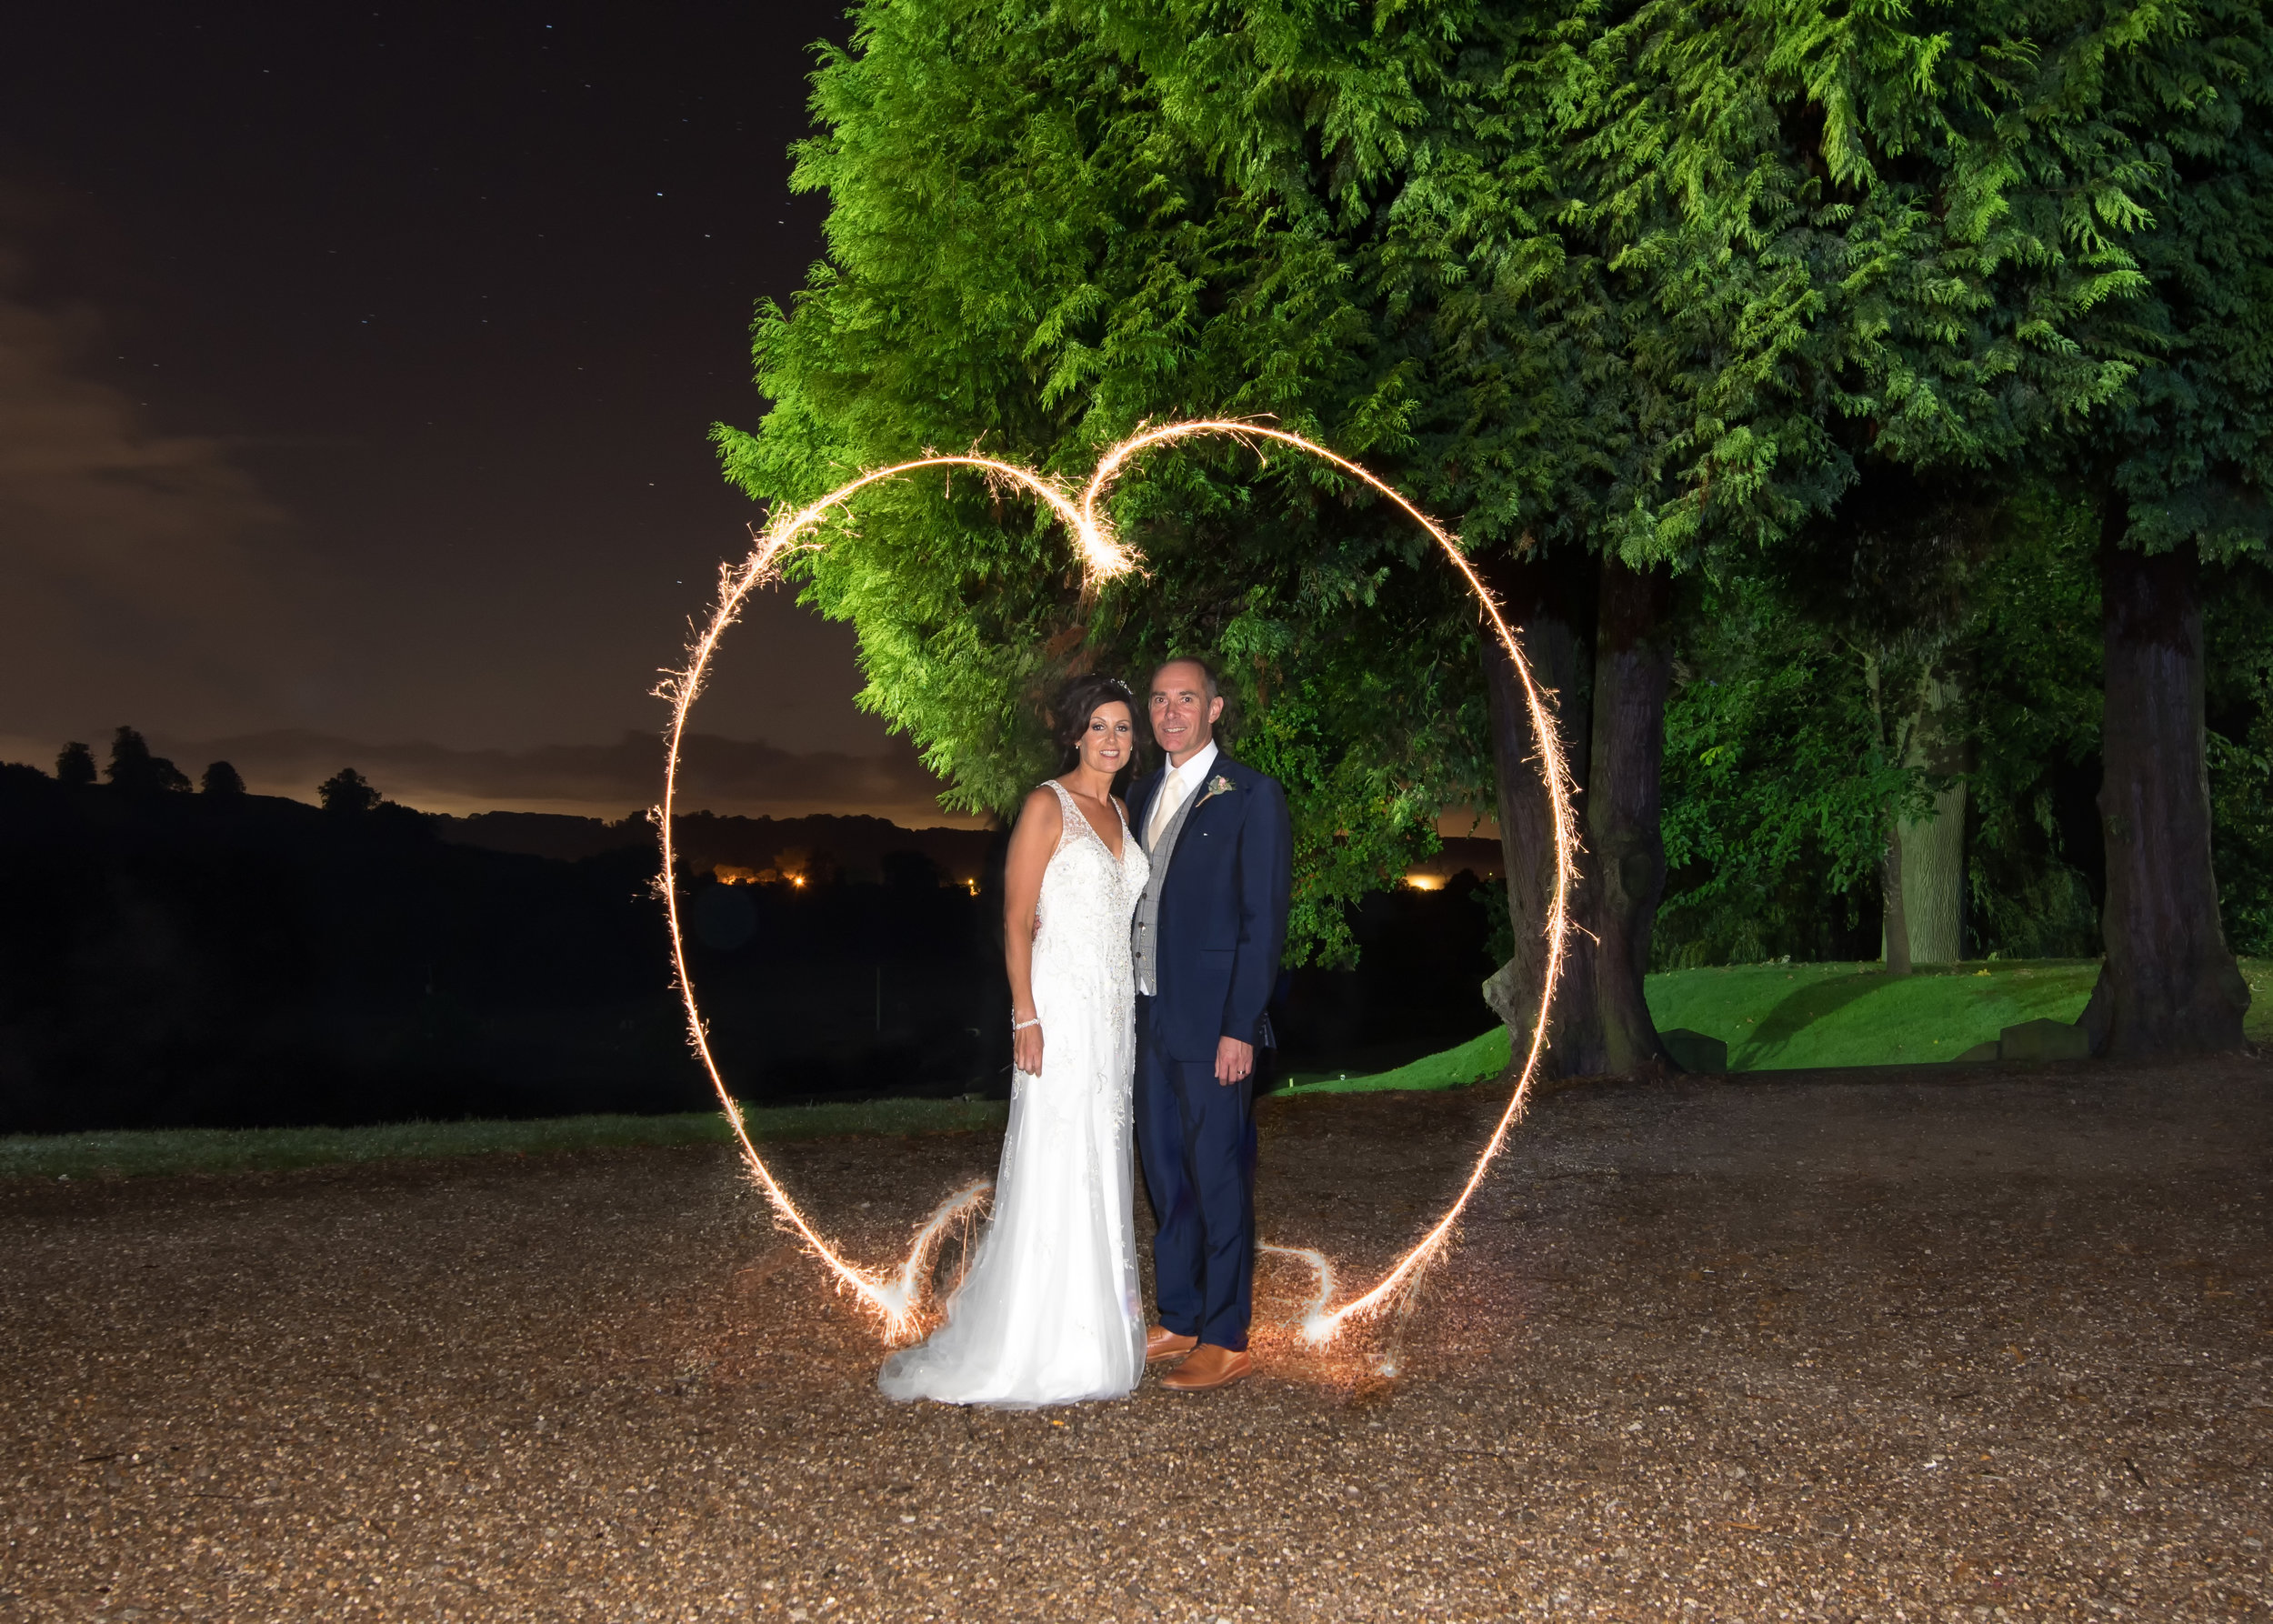 One of the couples favourite shots of the day - Created using sparklers